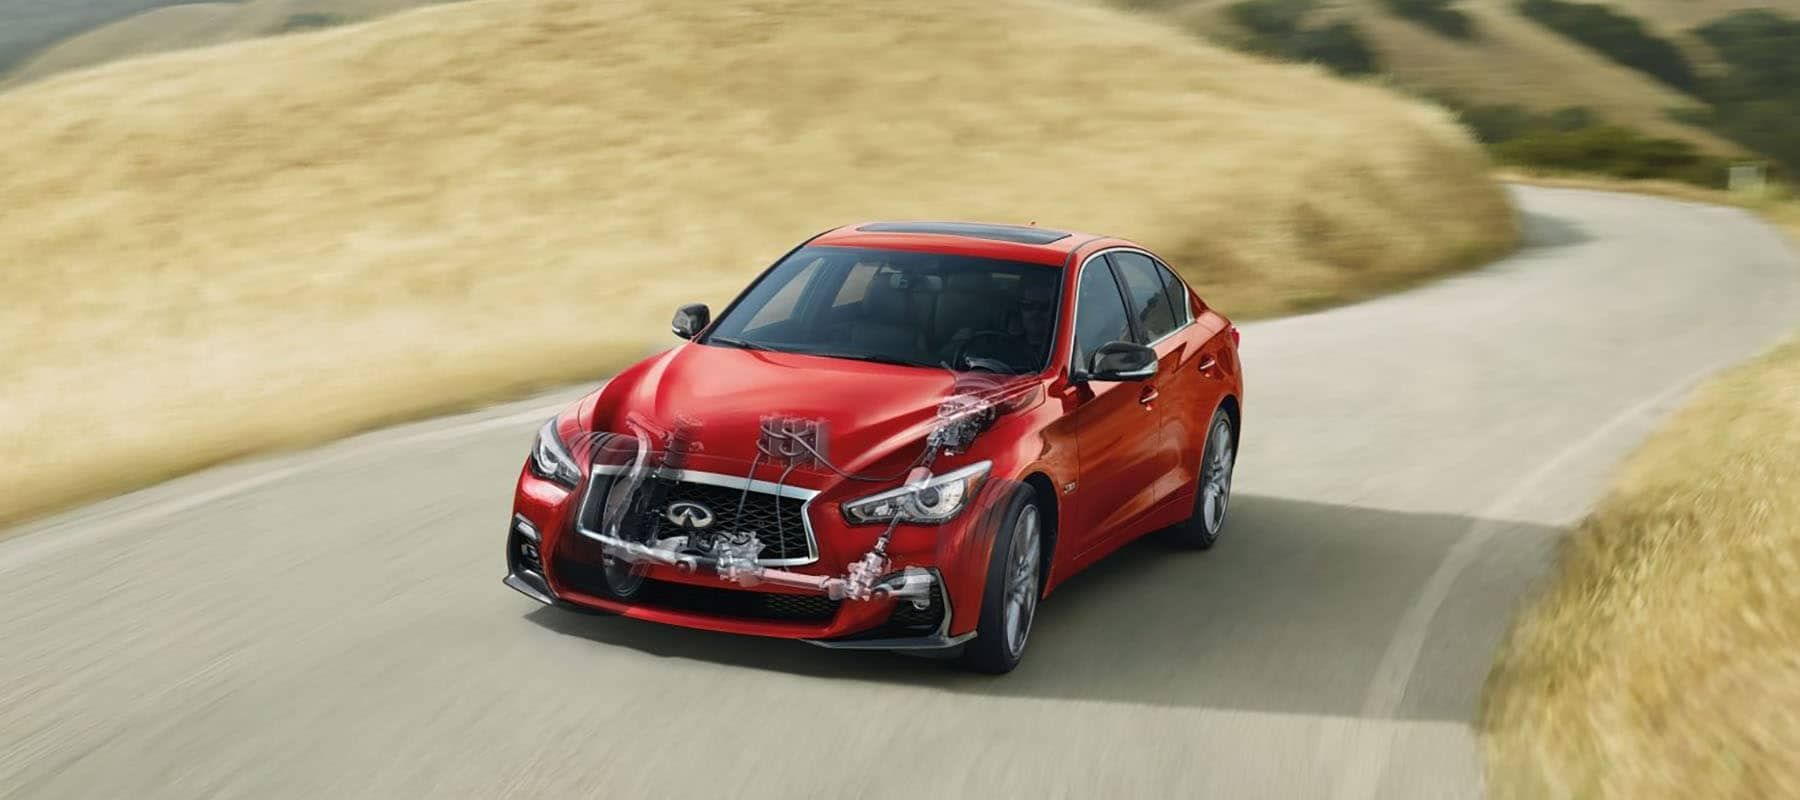 Oem Vs Aftermarket Parts Infiniti Of Naperville Can Help